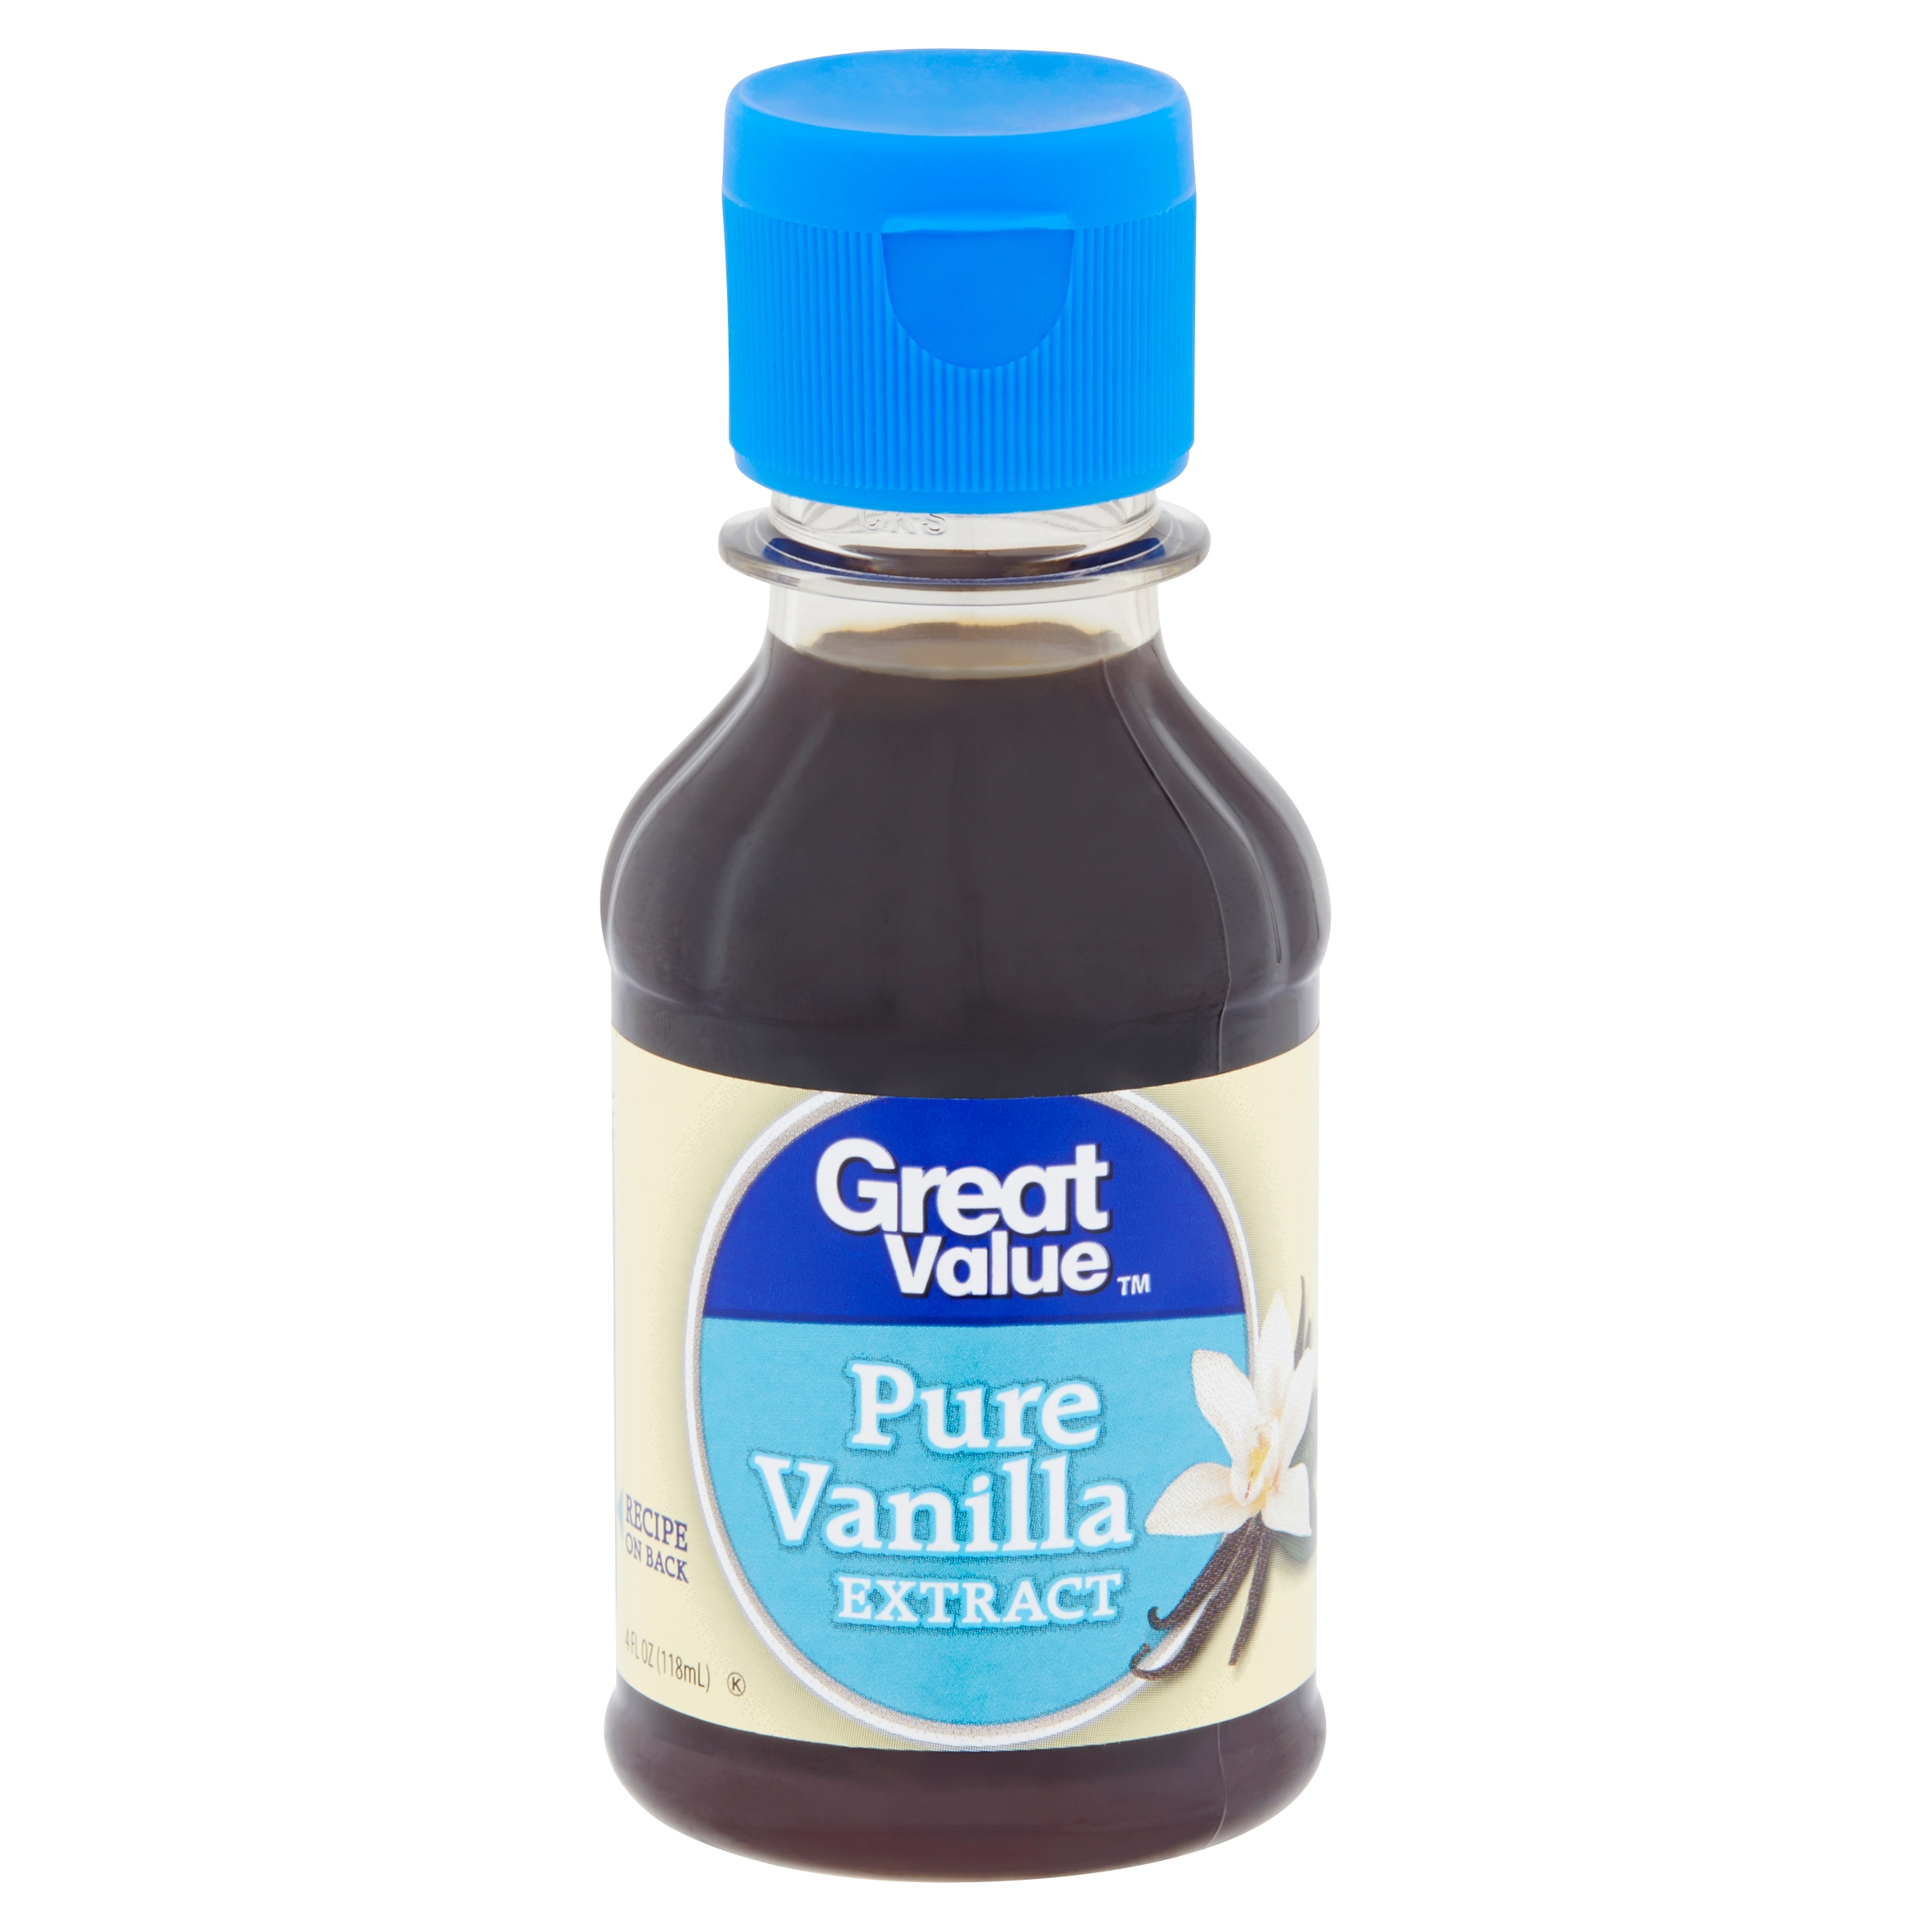 Great Value Pure Vanilla Extract, 4 fl oz